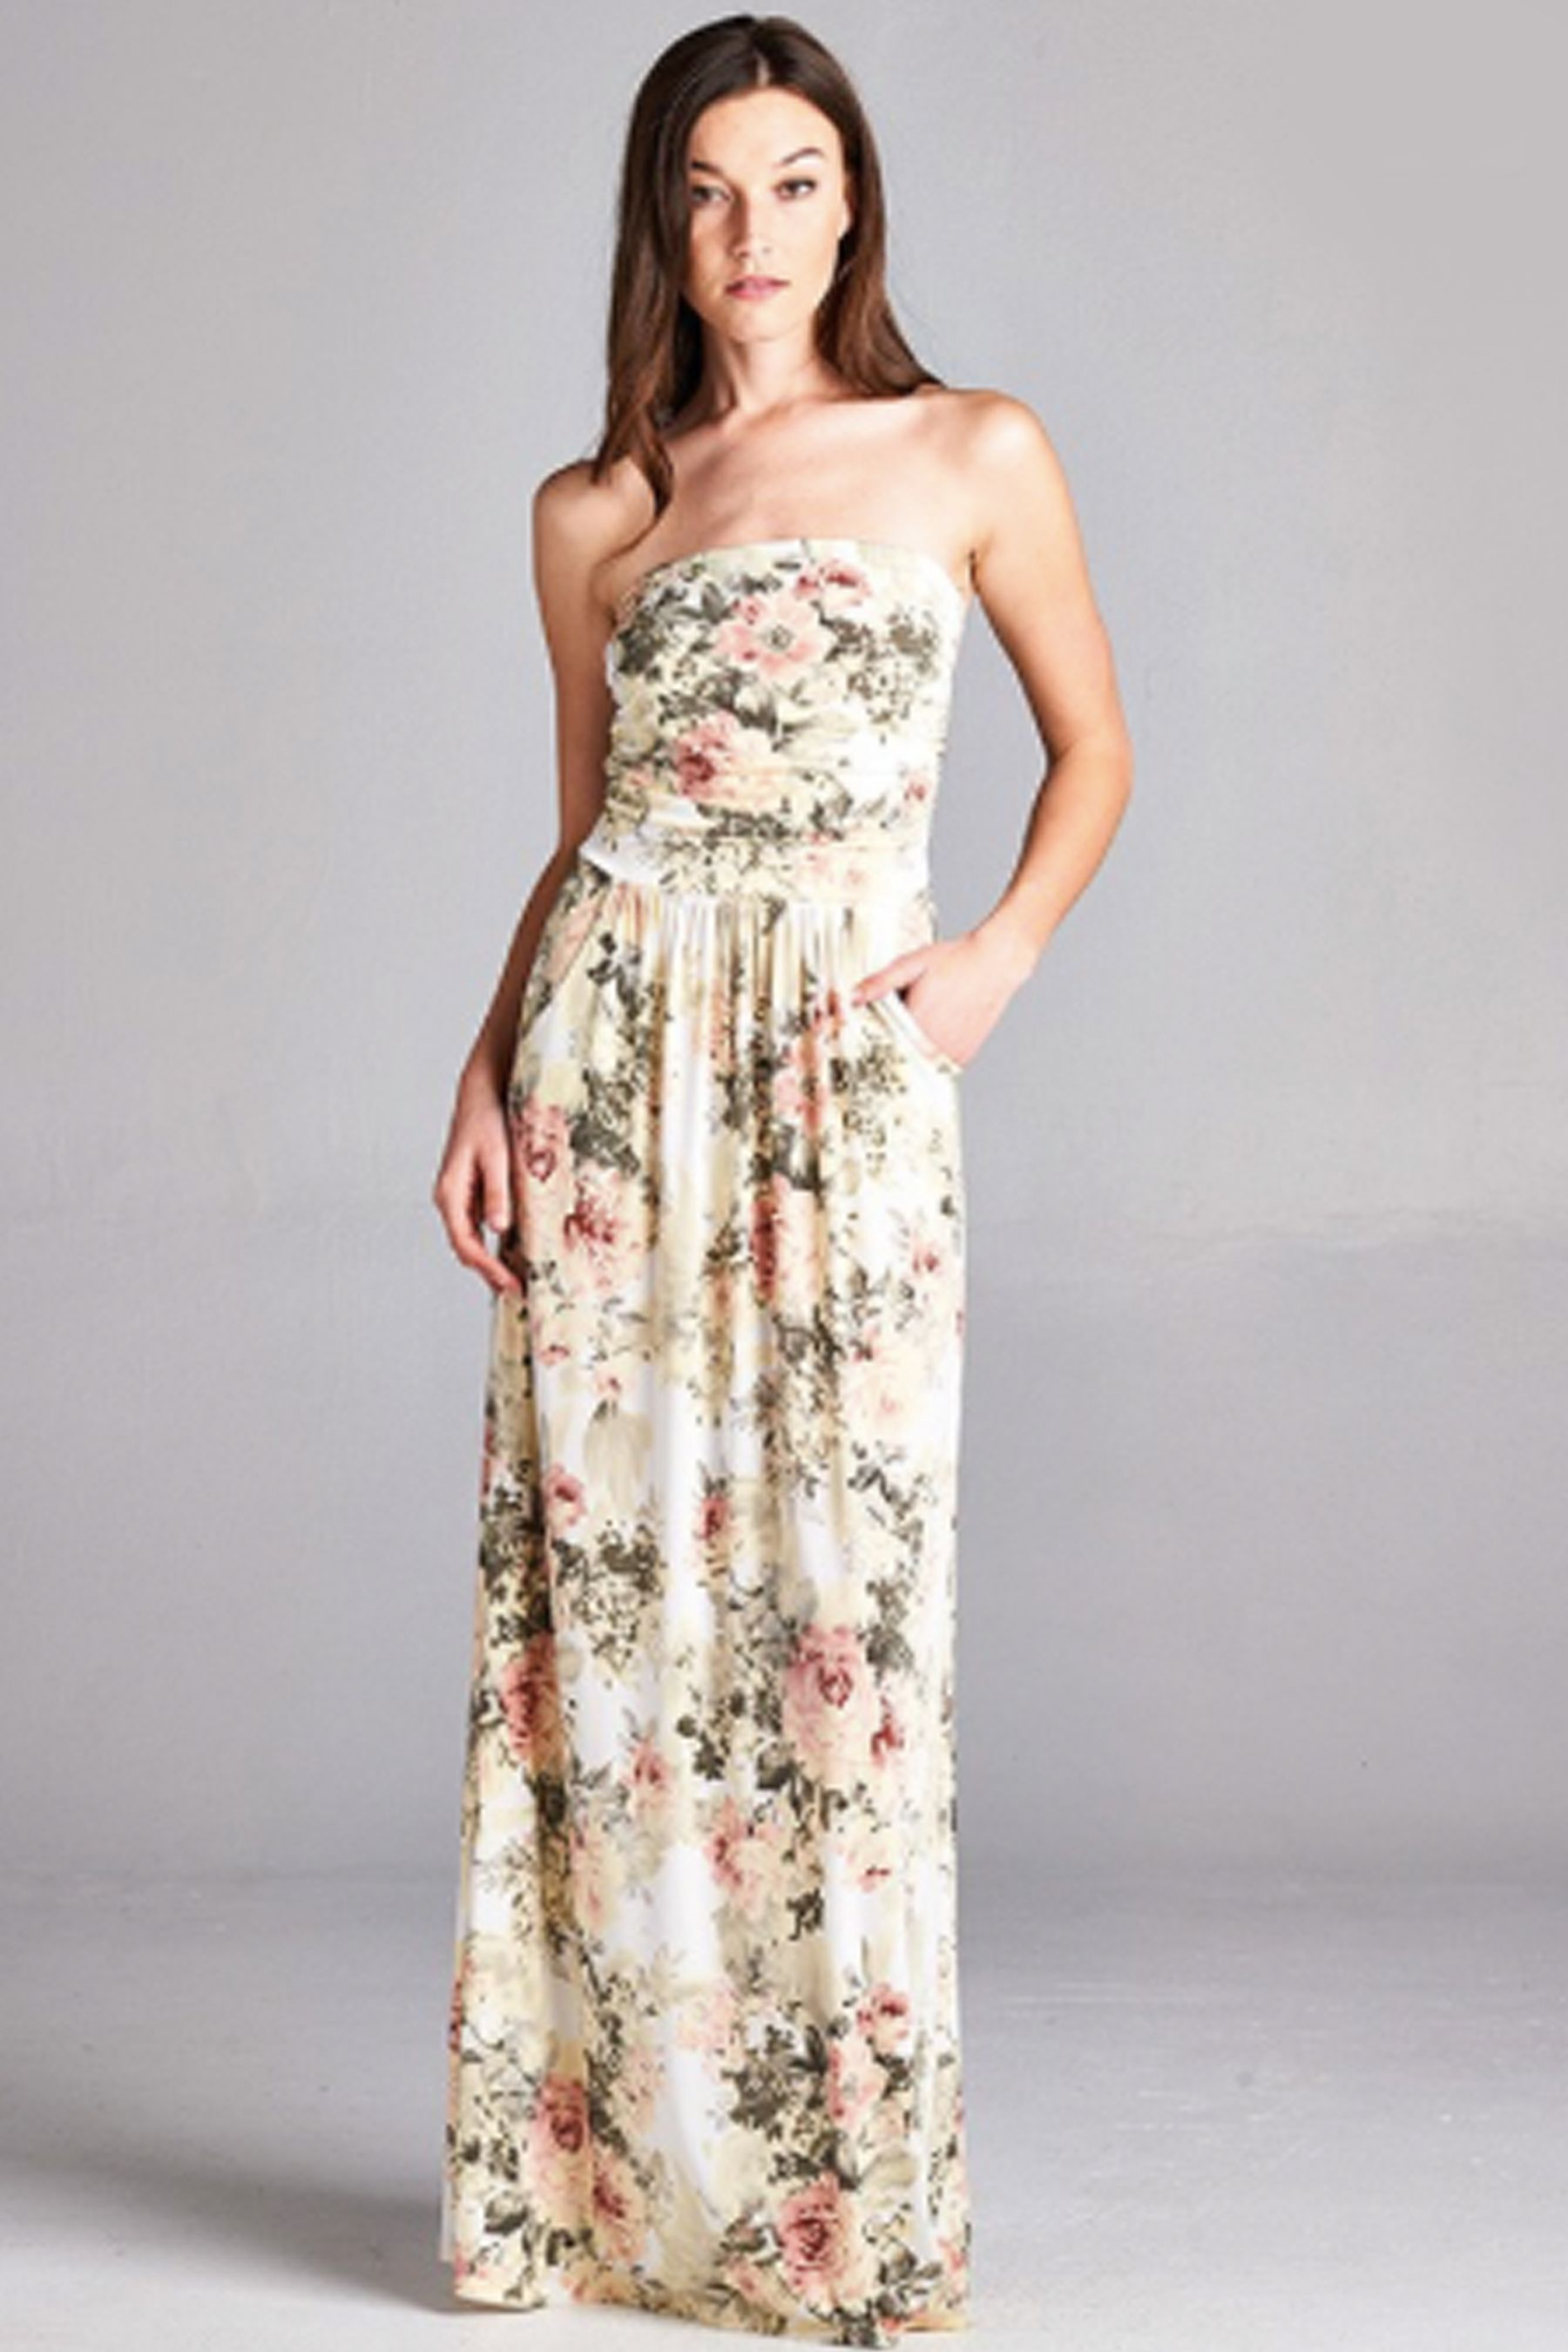 35ced1a9ca Strapless Gown · It's not your Grandma's 'antique roses' type of floral  dress! This pretty ivory